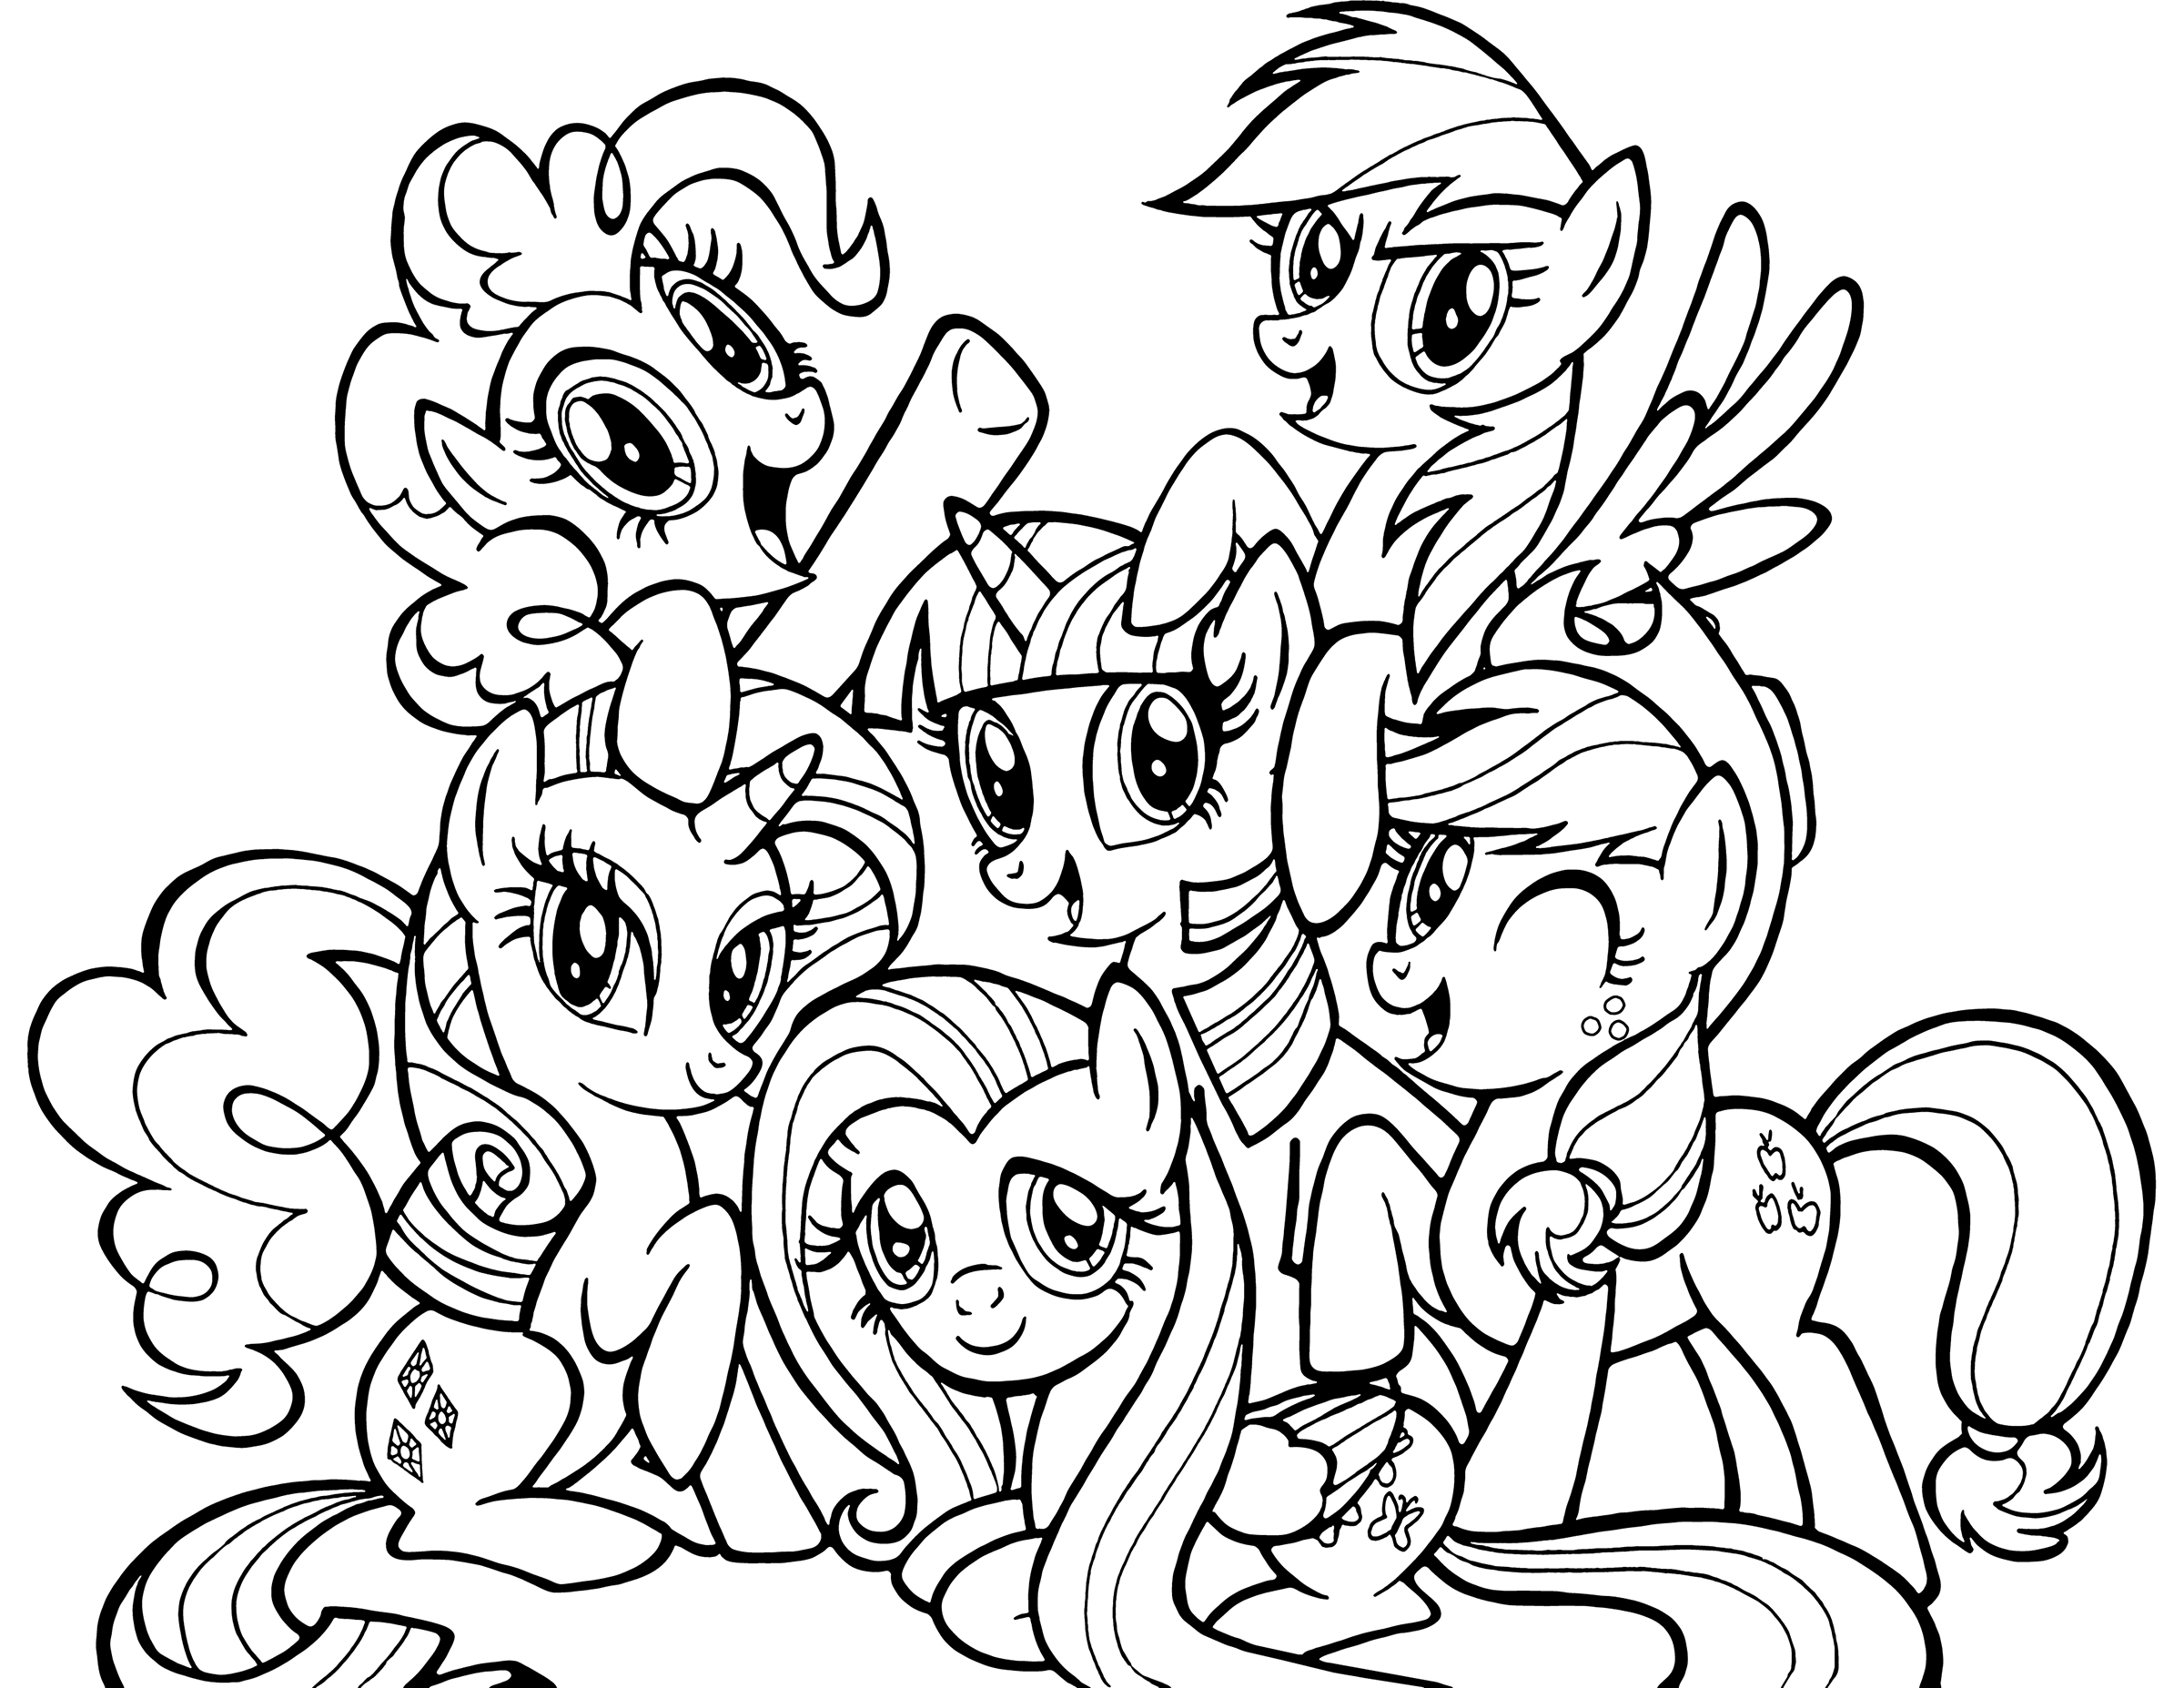 My Little Pony Coloring Pages Black And White : Раскраска Дружба это Чудо Раскраски пони чудо